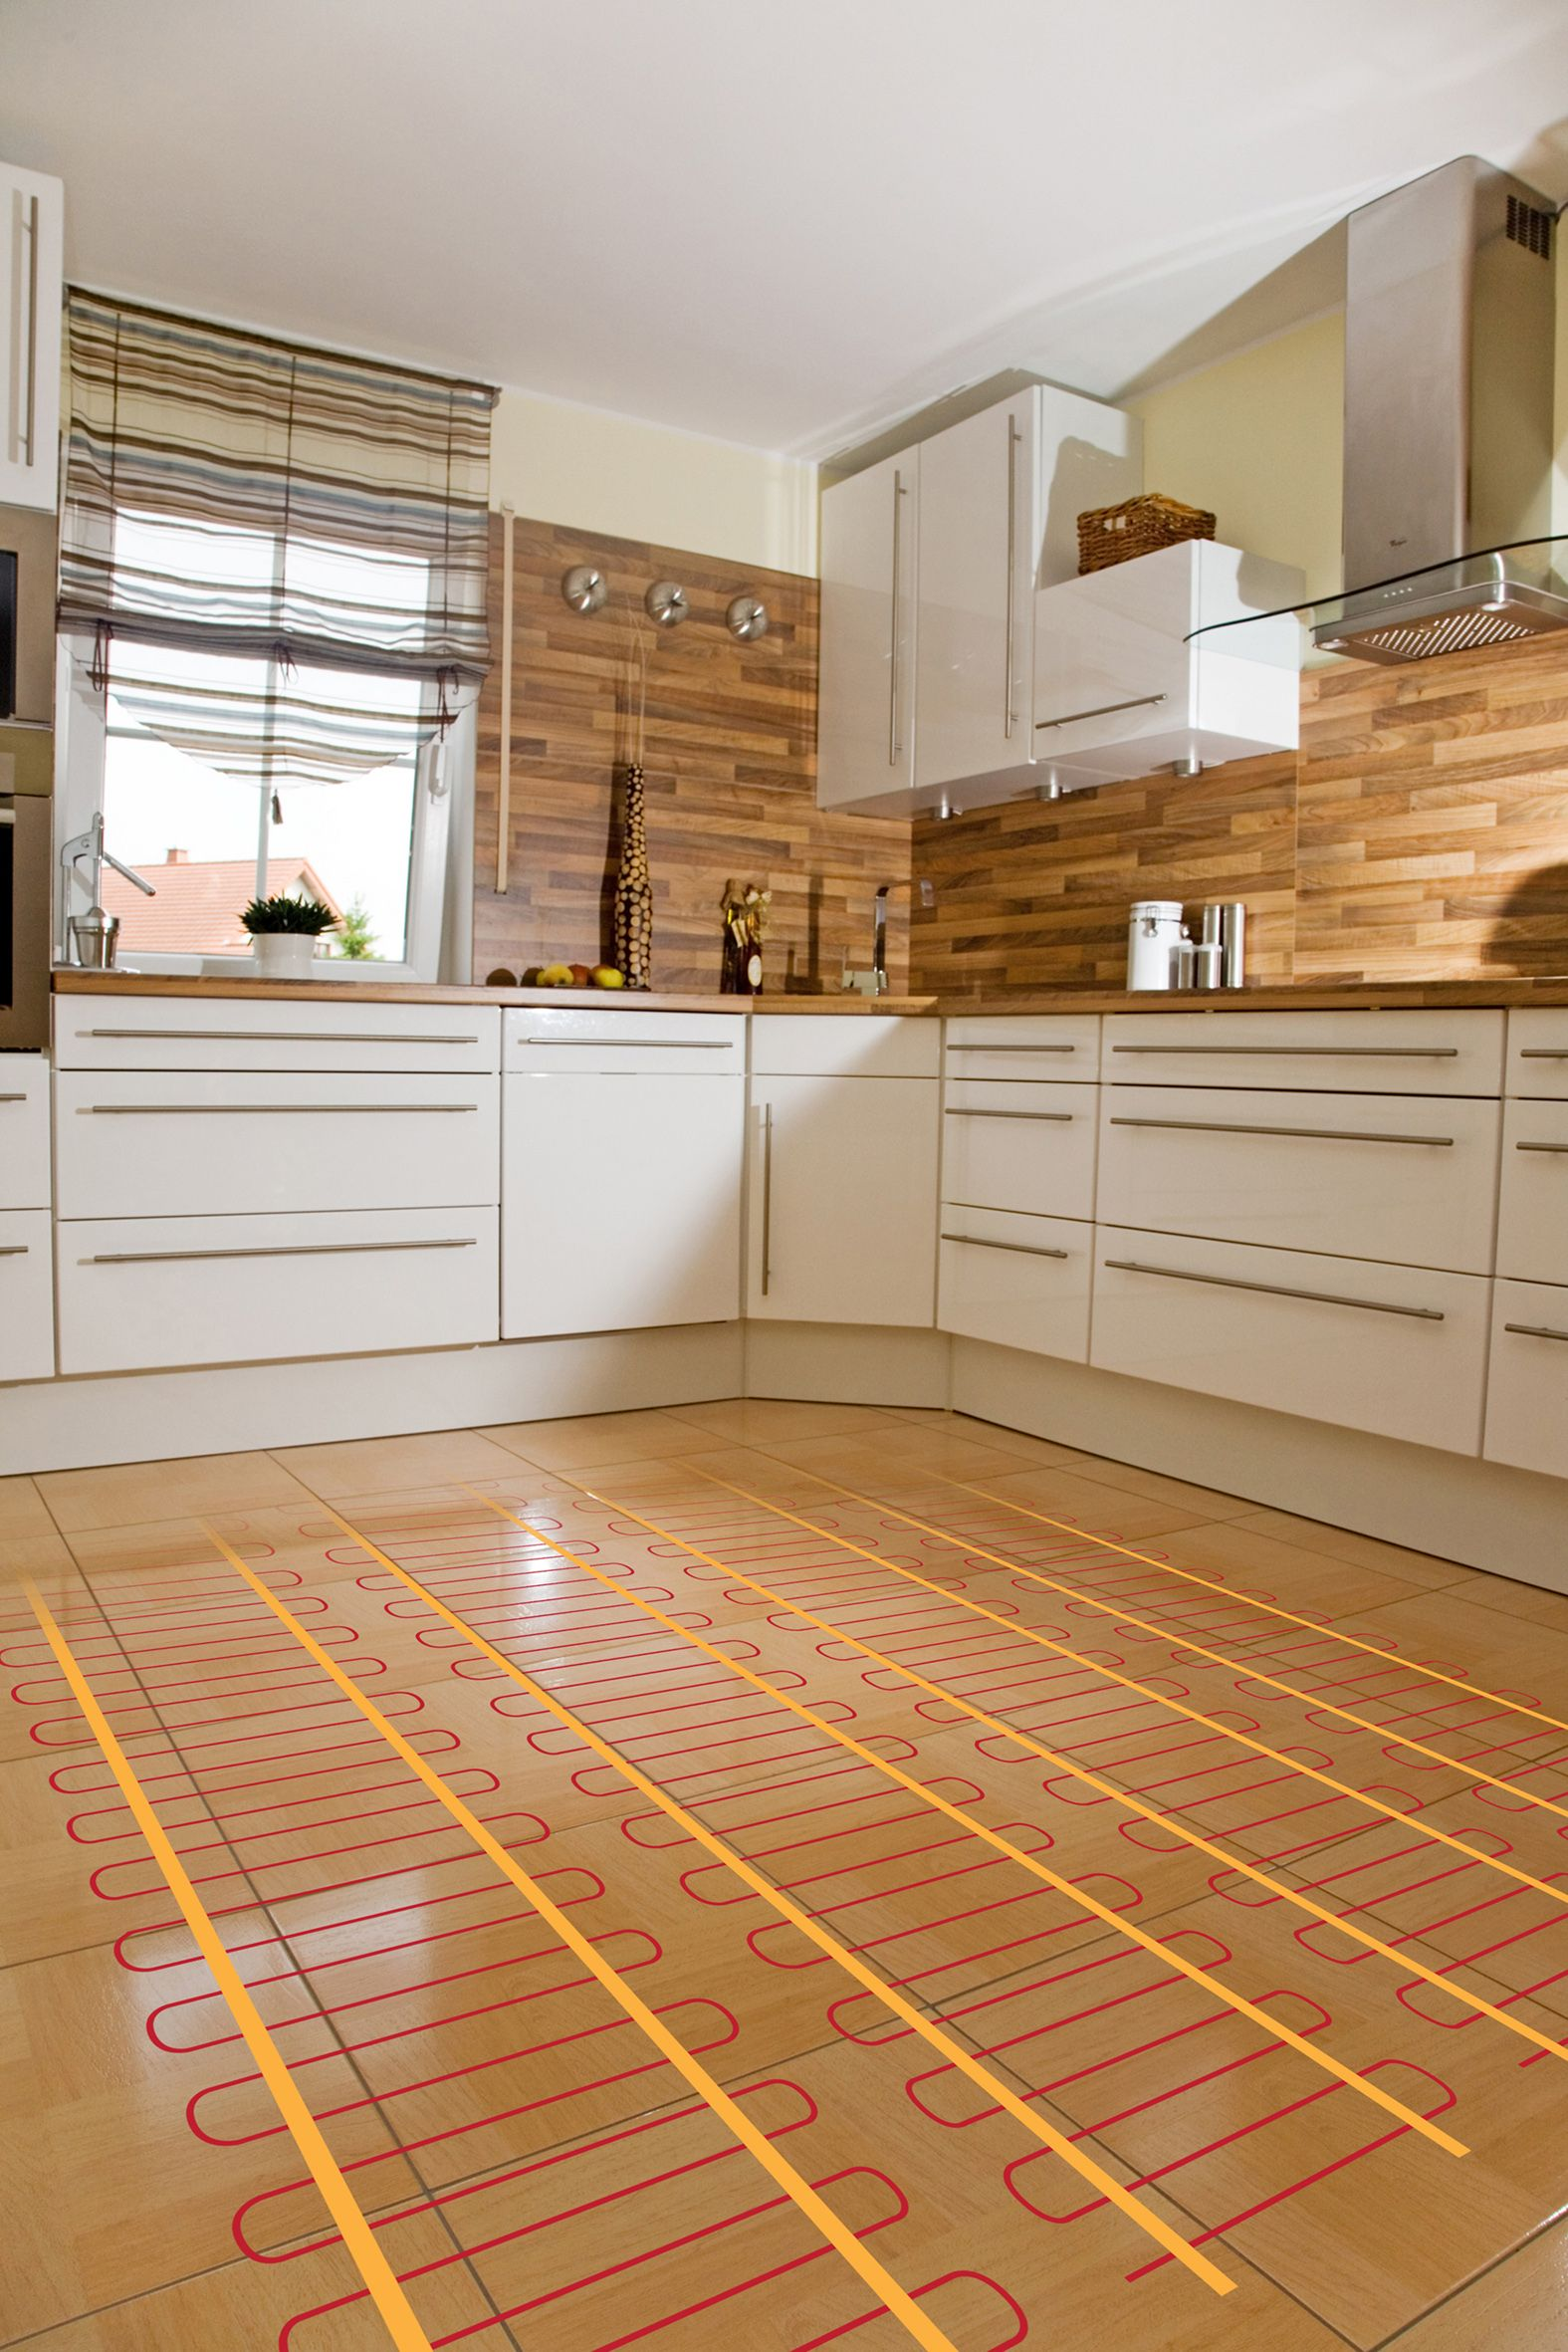 Did You Know Electric Tankless Water Heaters Are Great For Radiant/Floor  Heating? Amazing Ideas